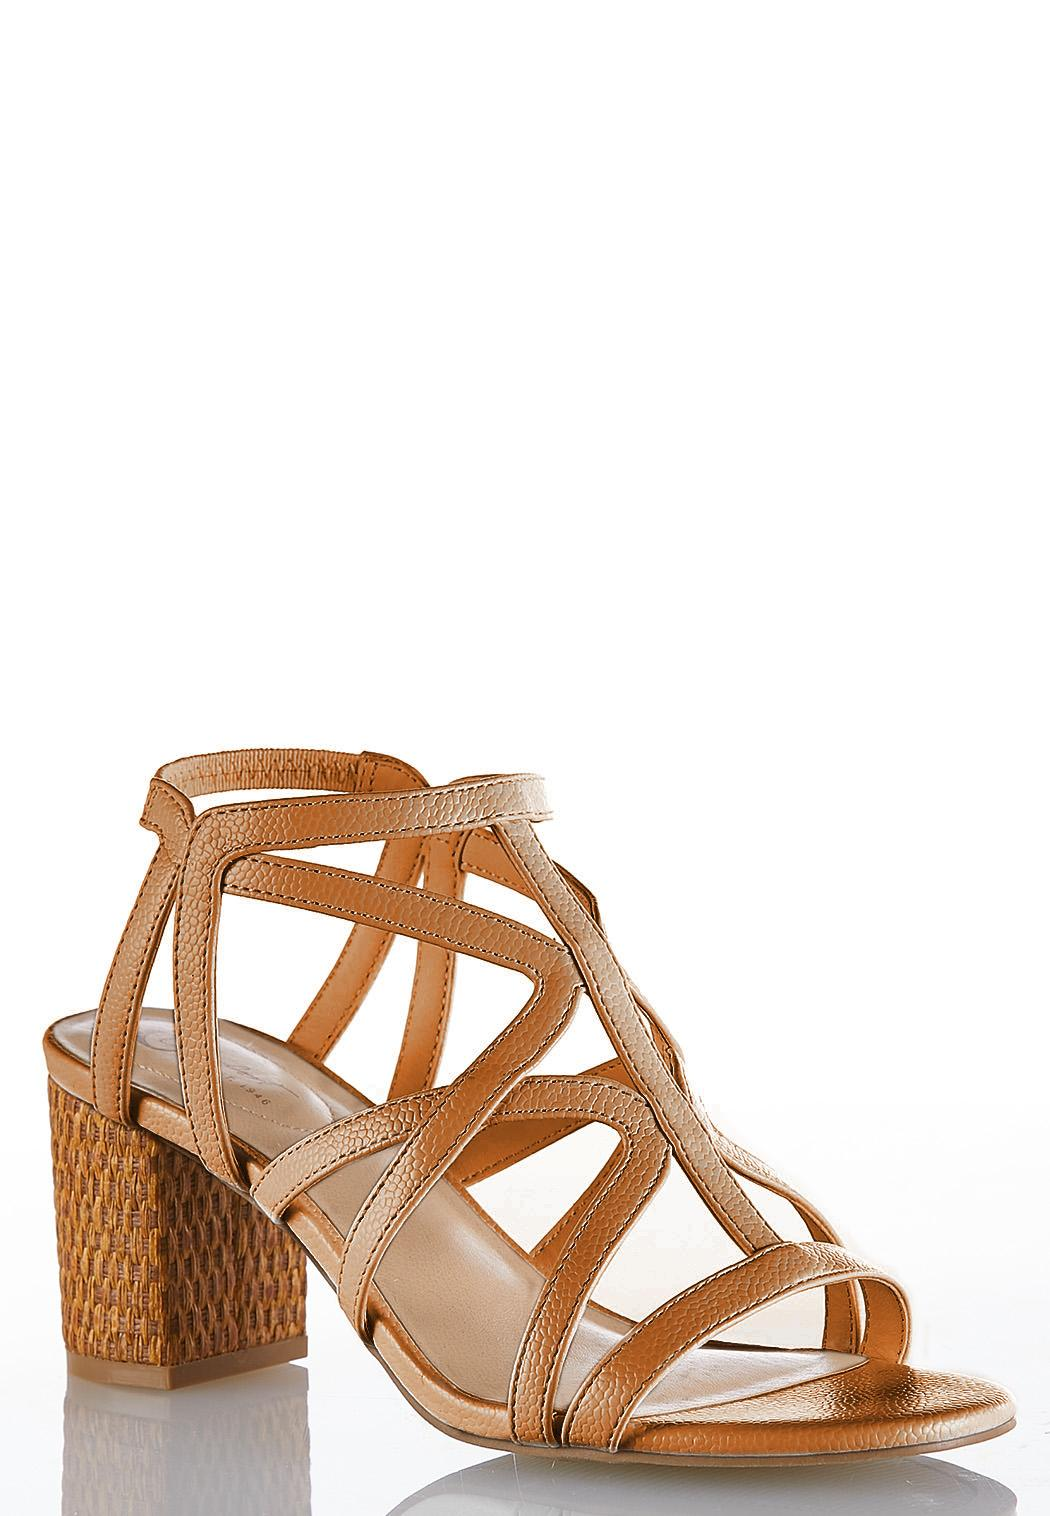 5e9f057699d7 Wide Width Caged Woven Heel Sandals Heels Cato Fashions